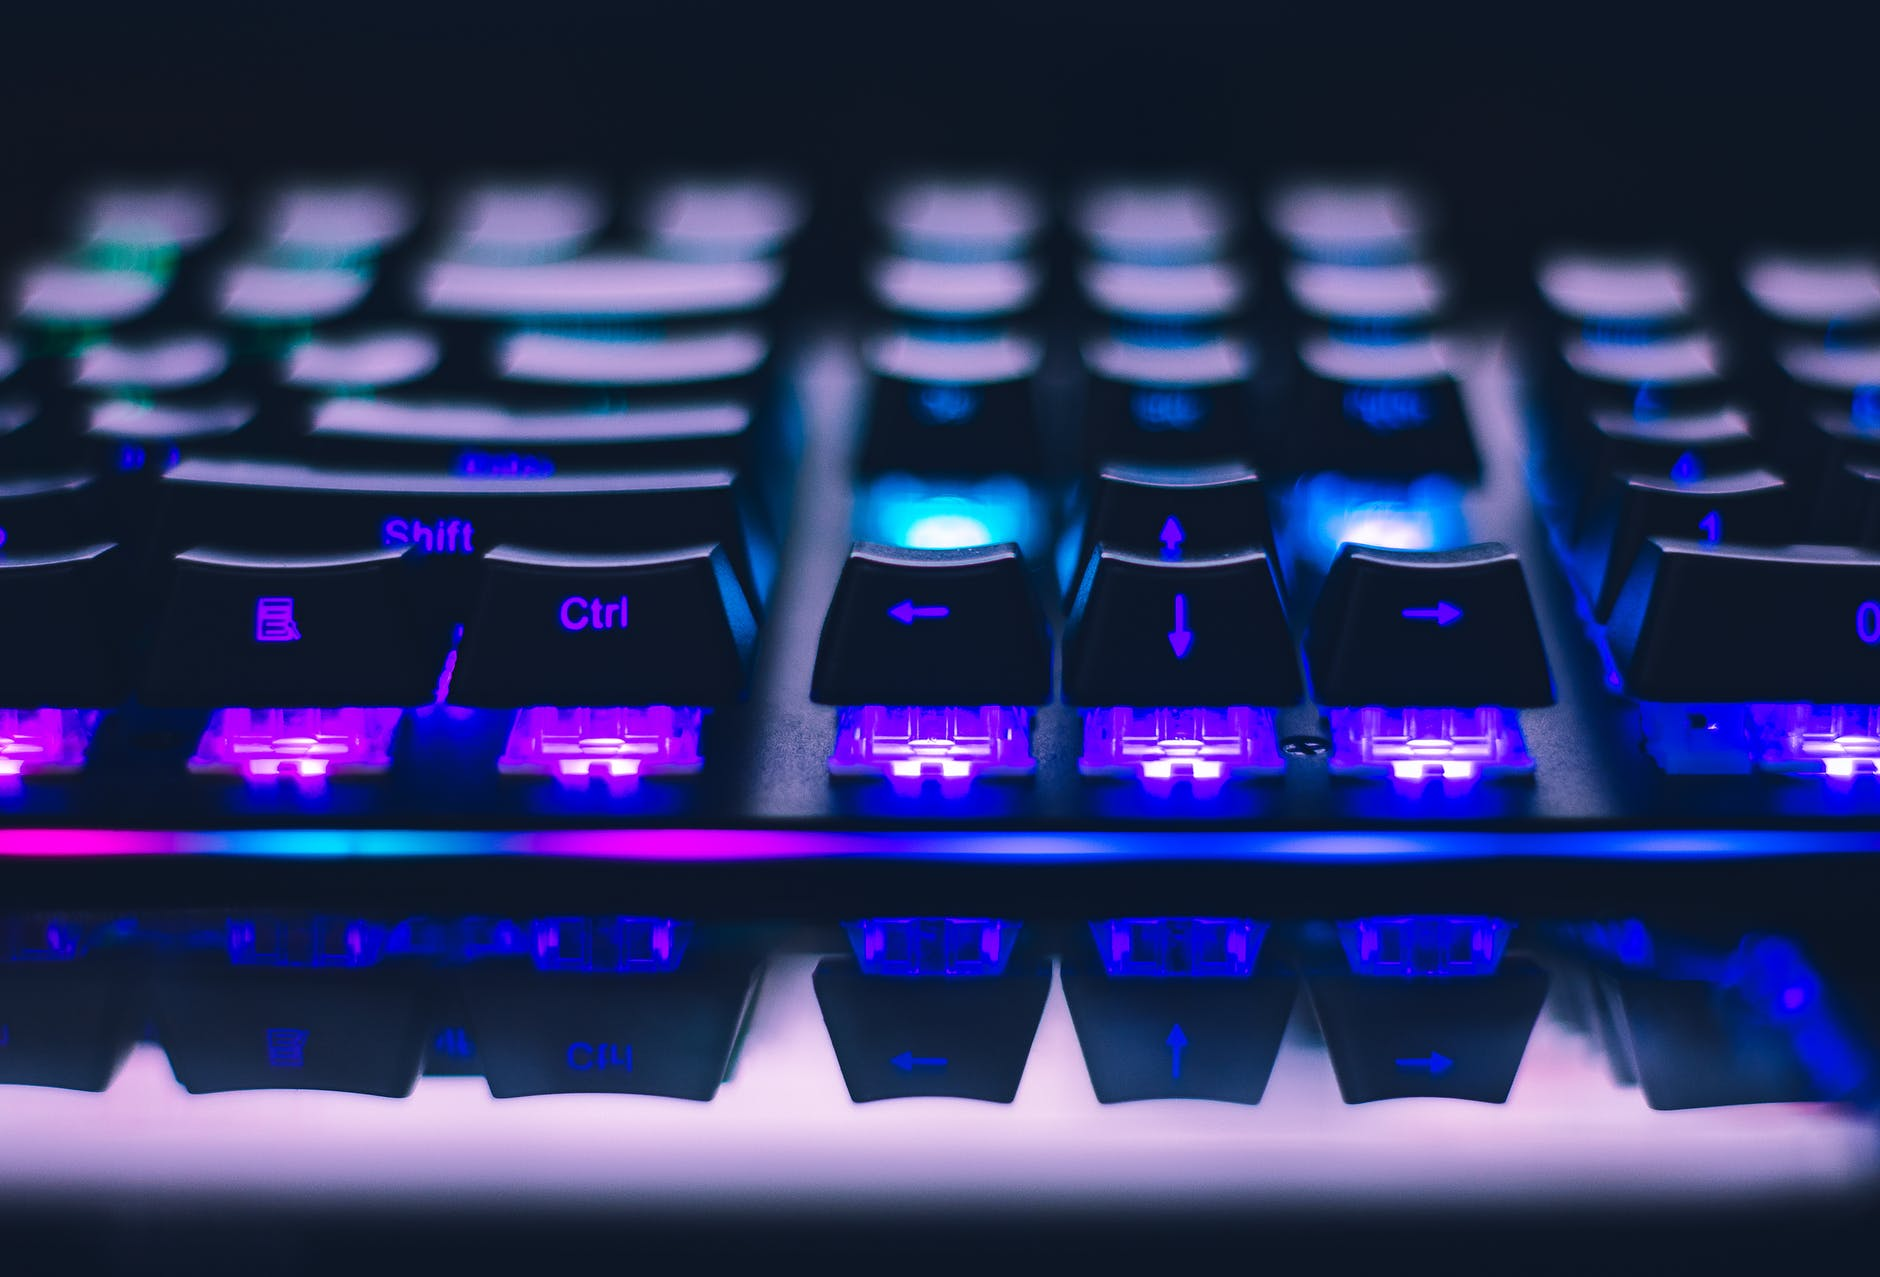 Learn About Types Of Keyboard And Common Keyboard Terminologies